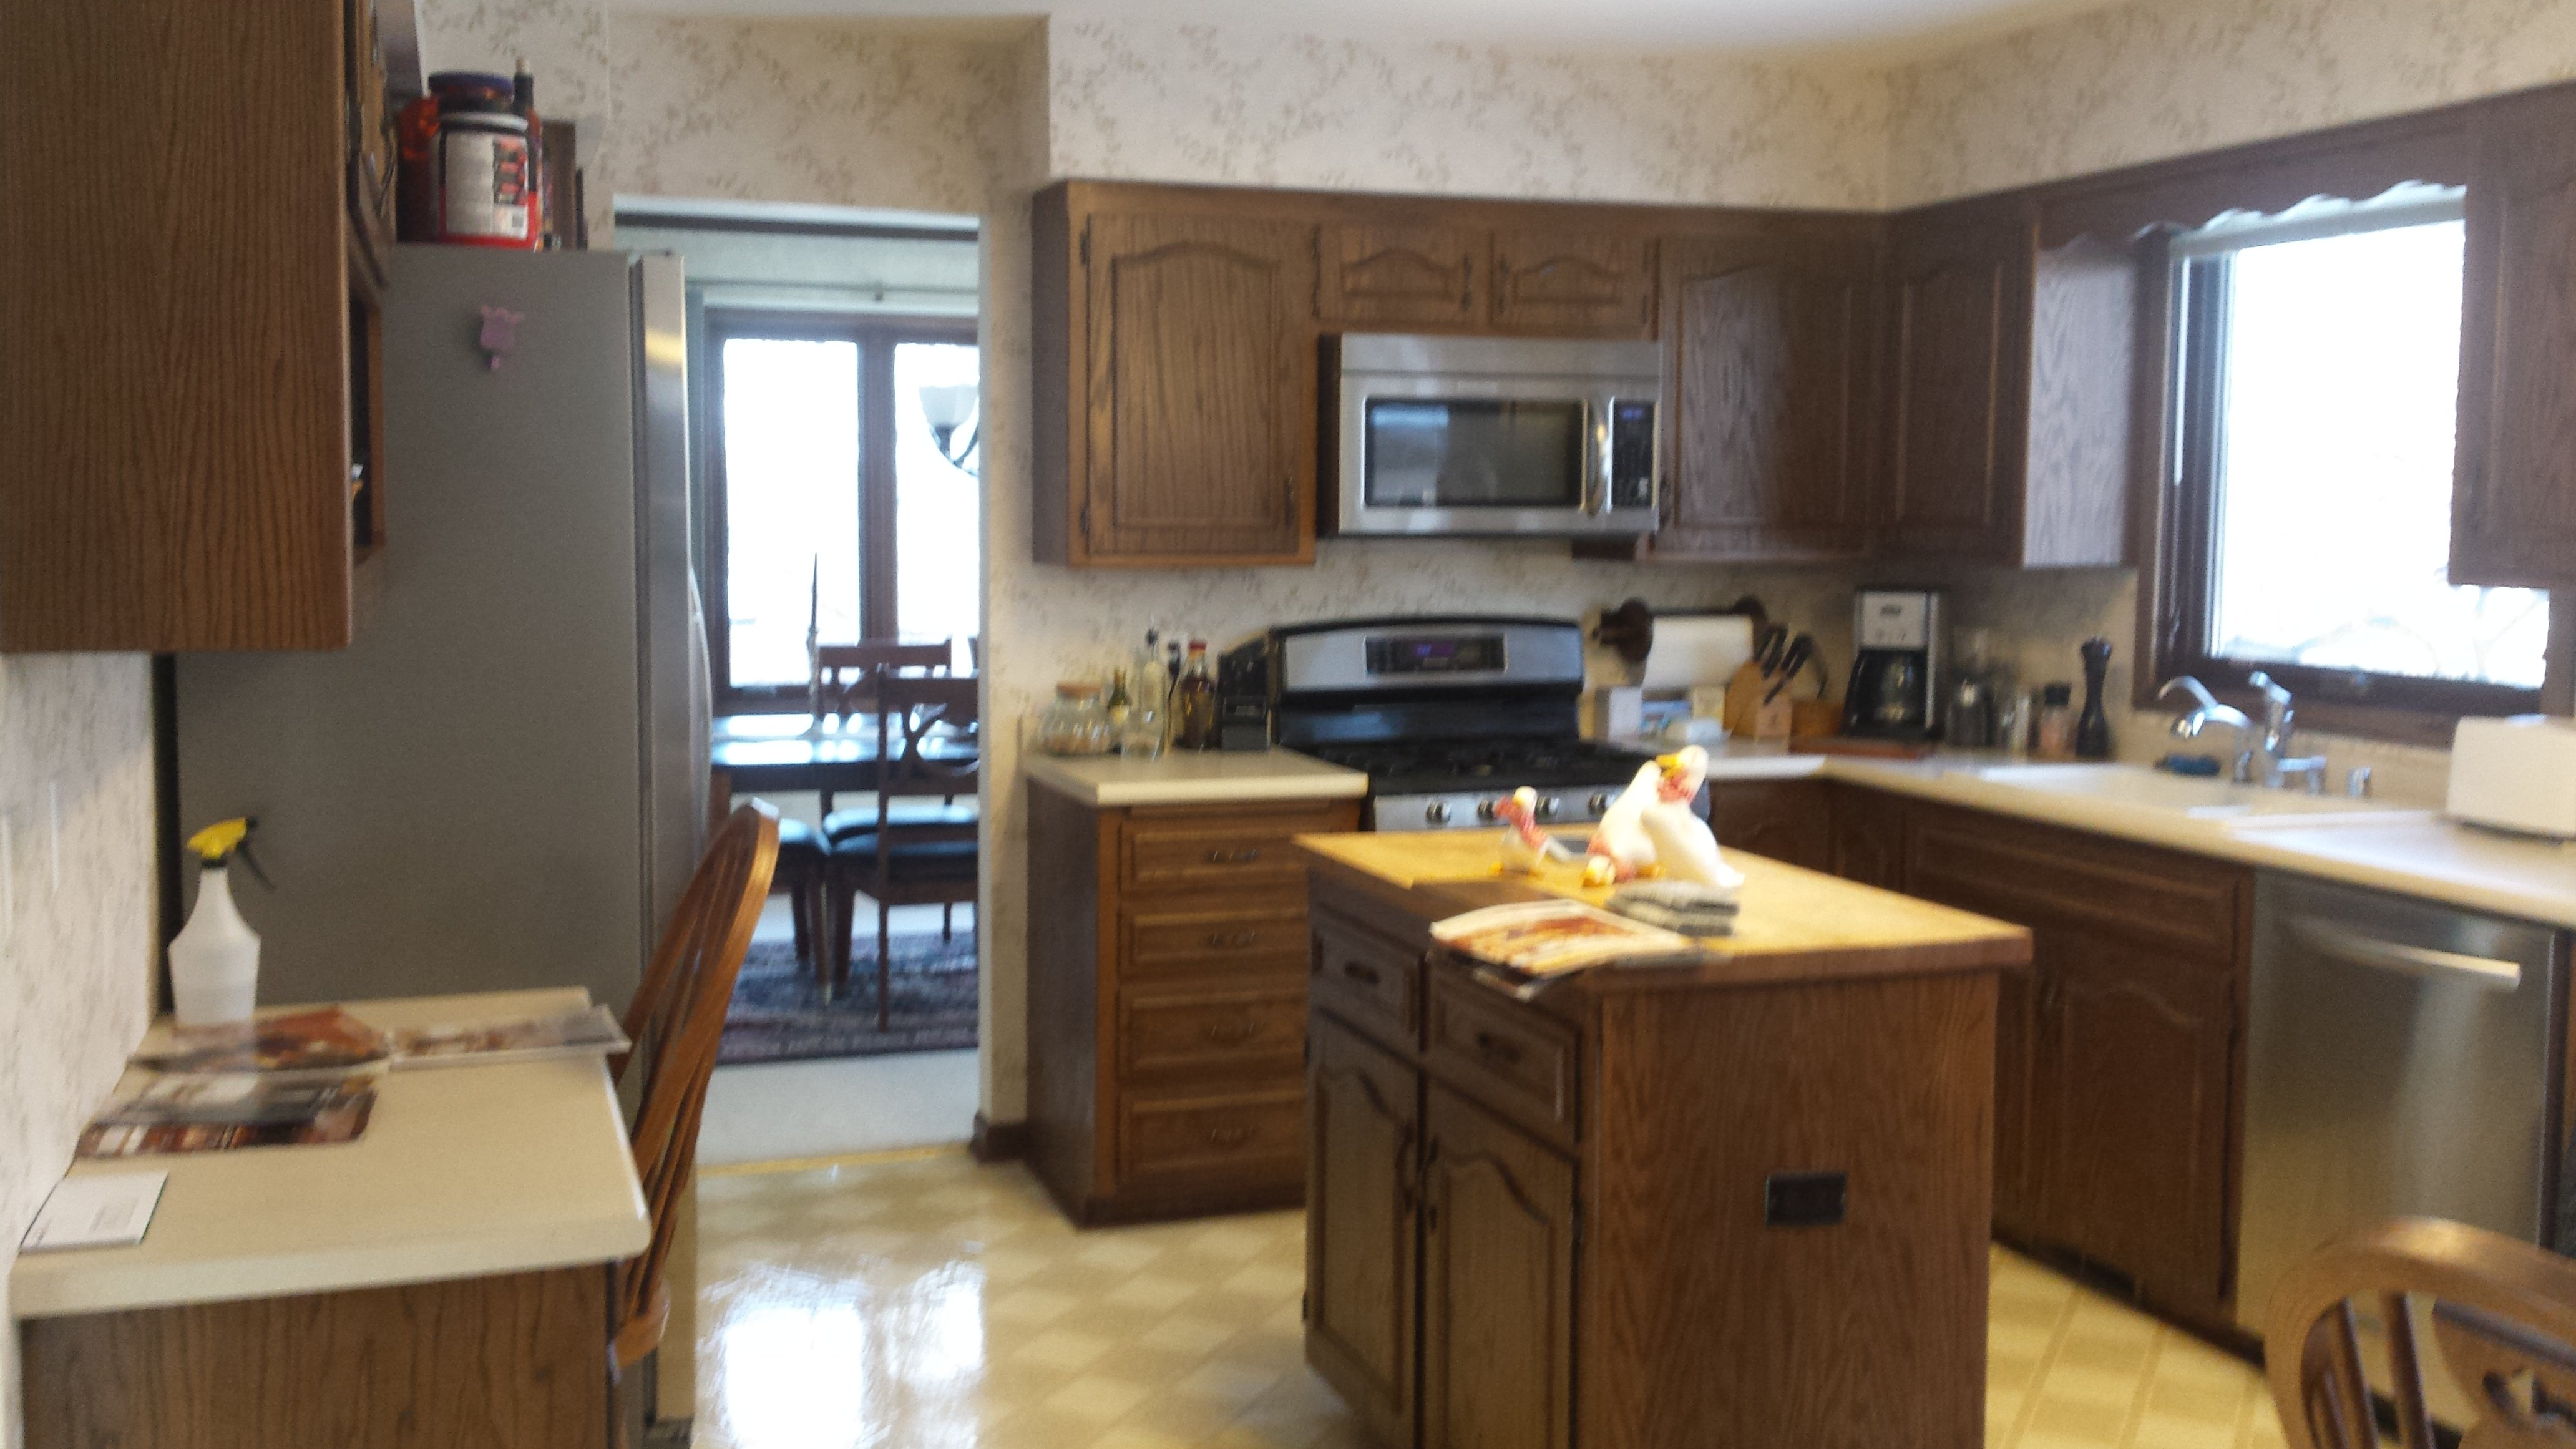 Kitchen Remodeling and Design, before photo